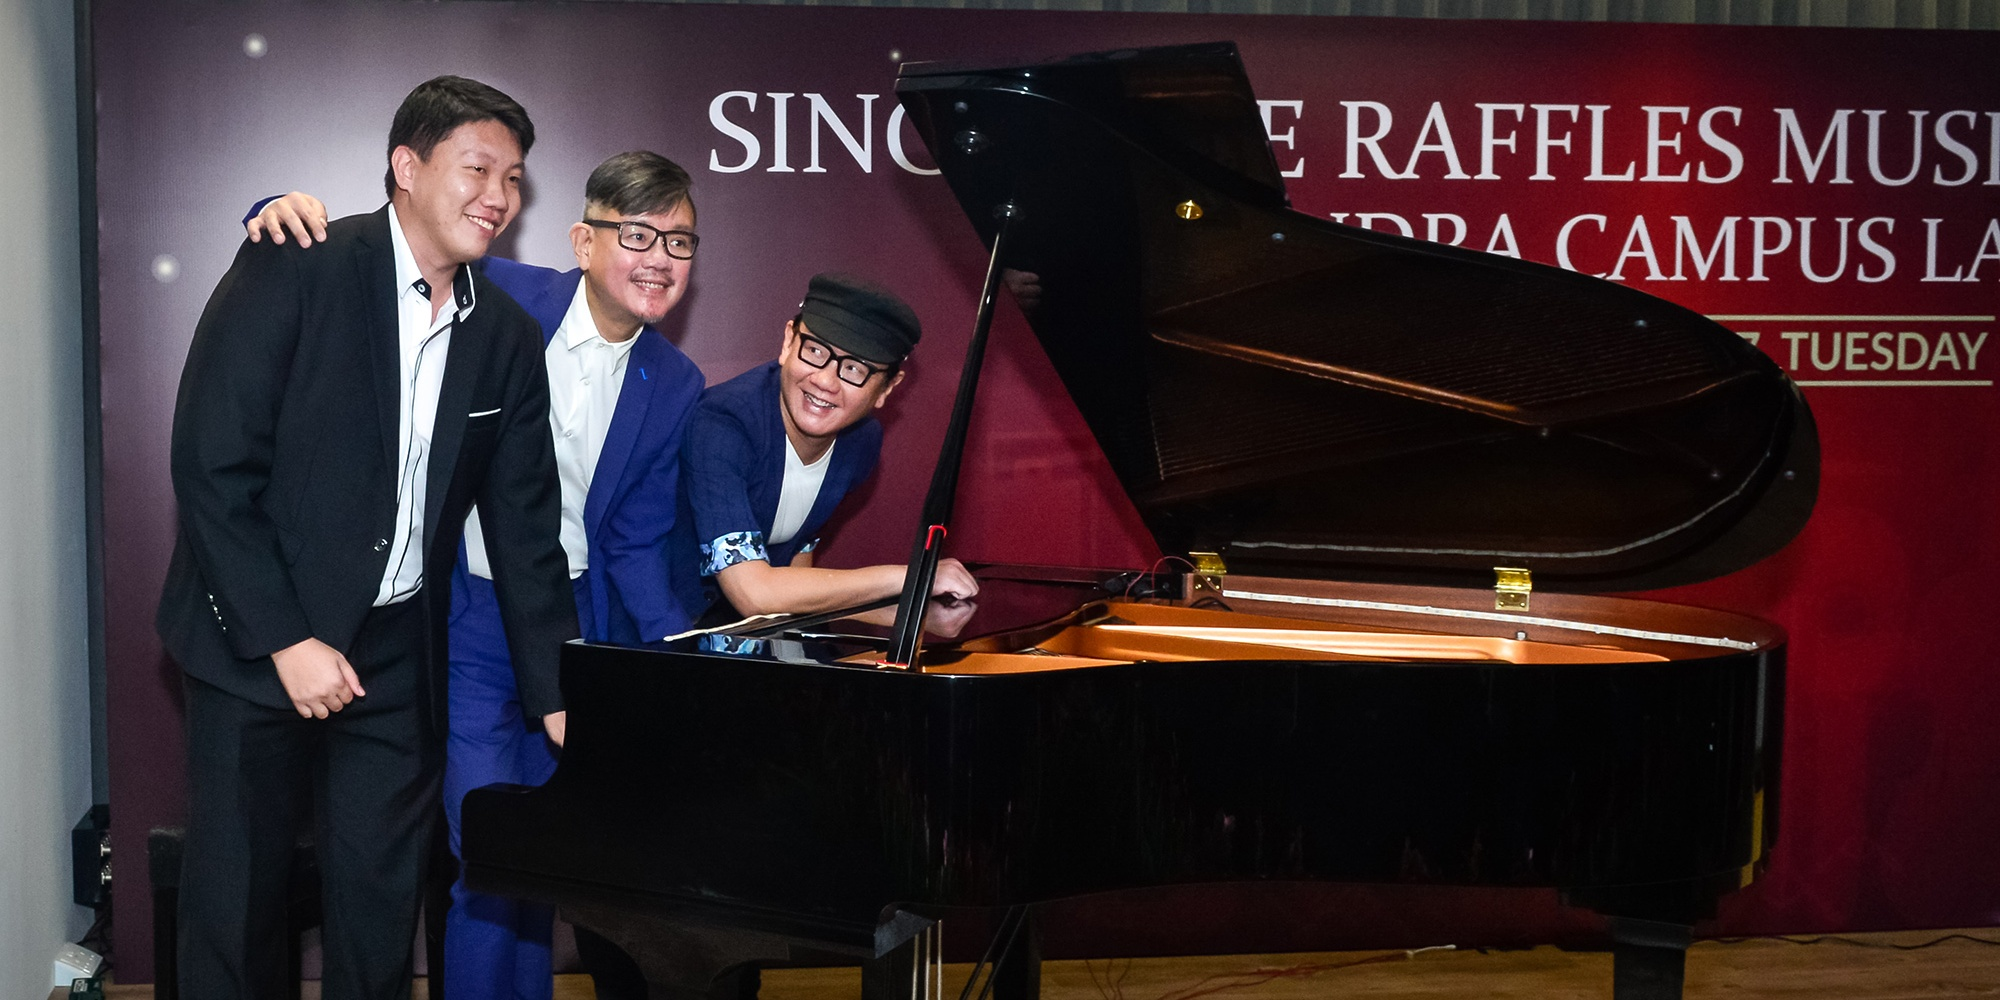 Singapore Raffles Music College officially launches flagship campus